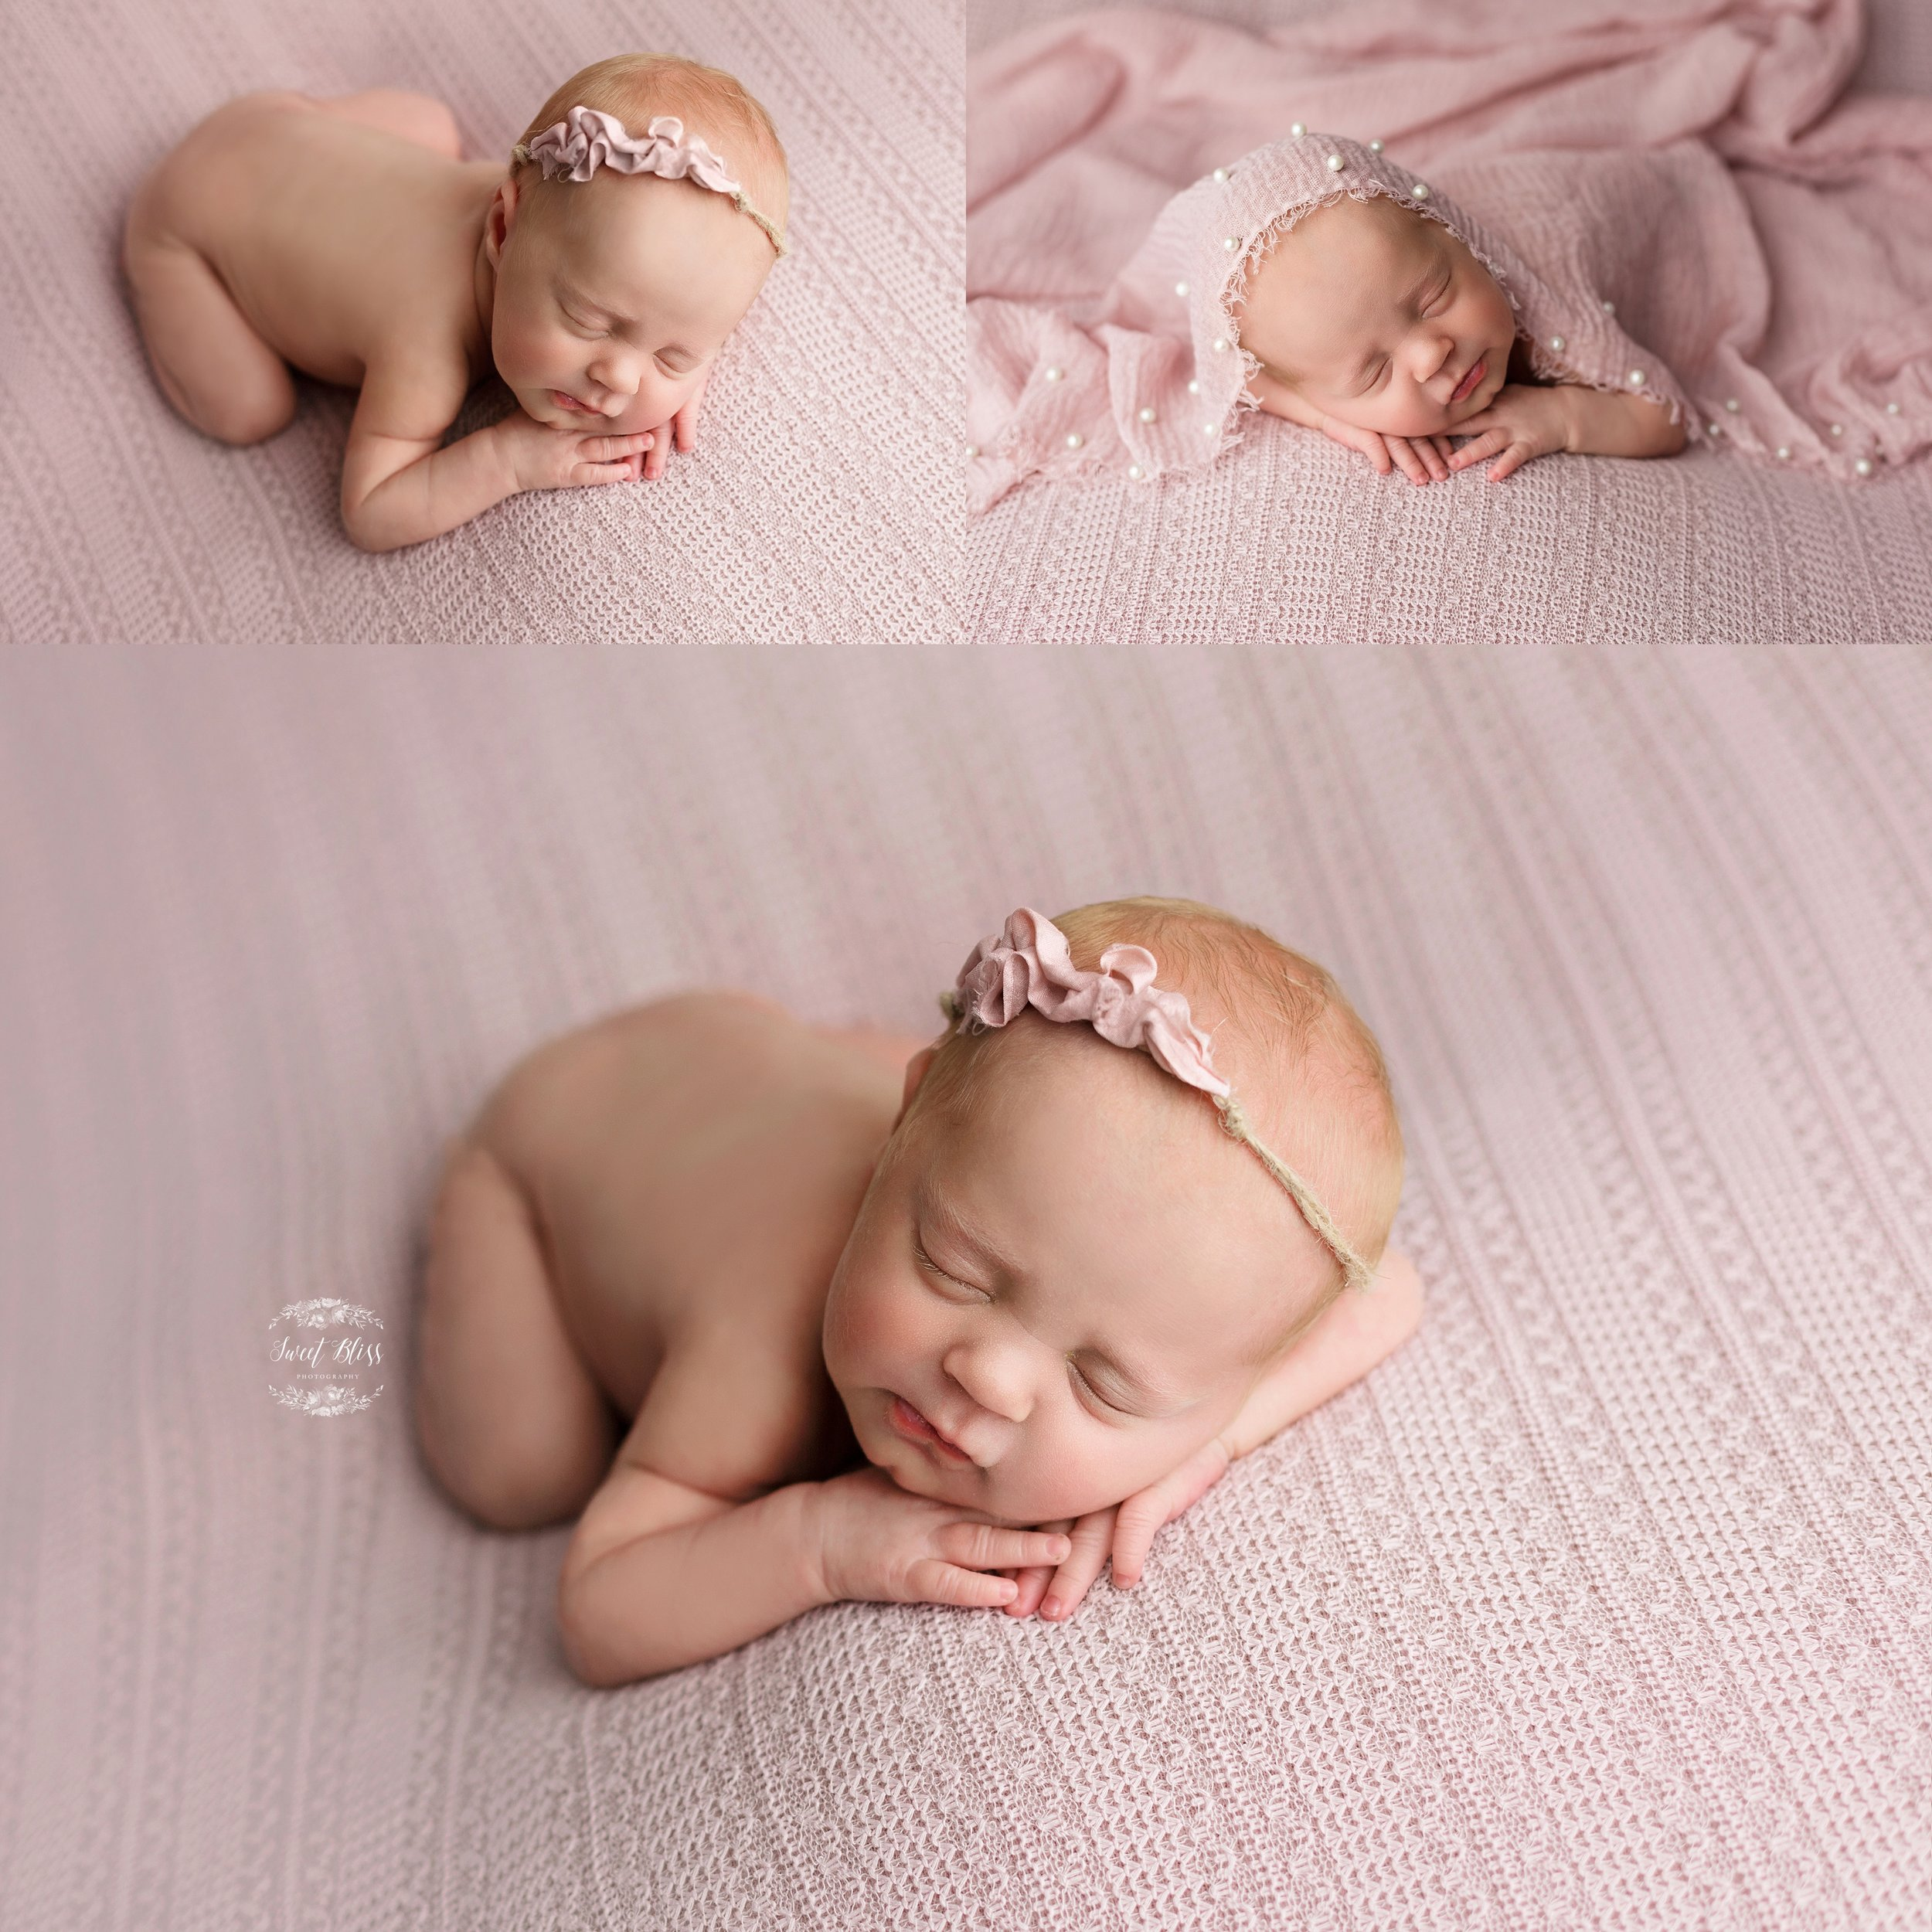 Mauve_Newbornphotography_sweetblissphoto_Baltimorenewbornphotographer.jpg